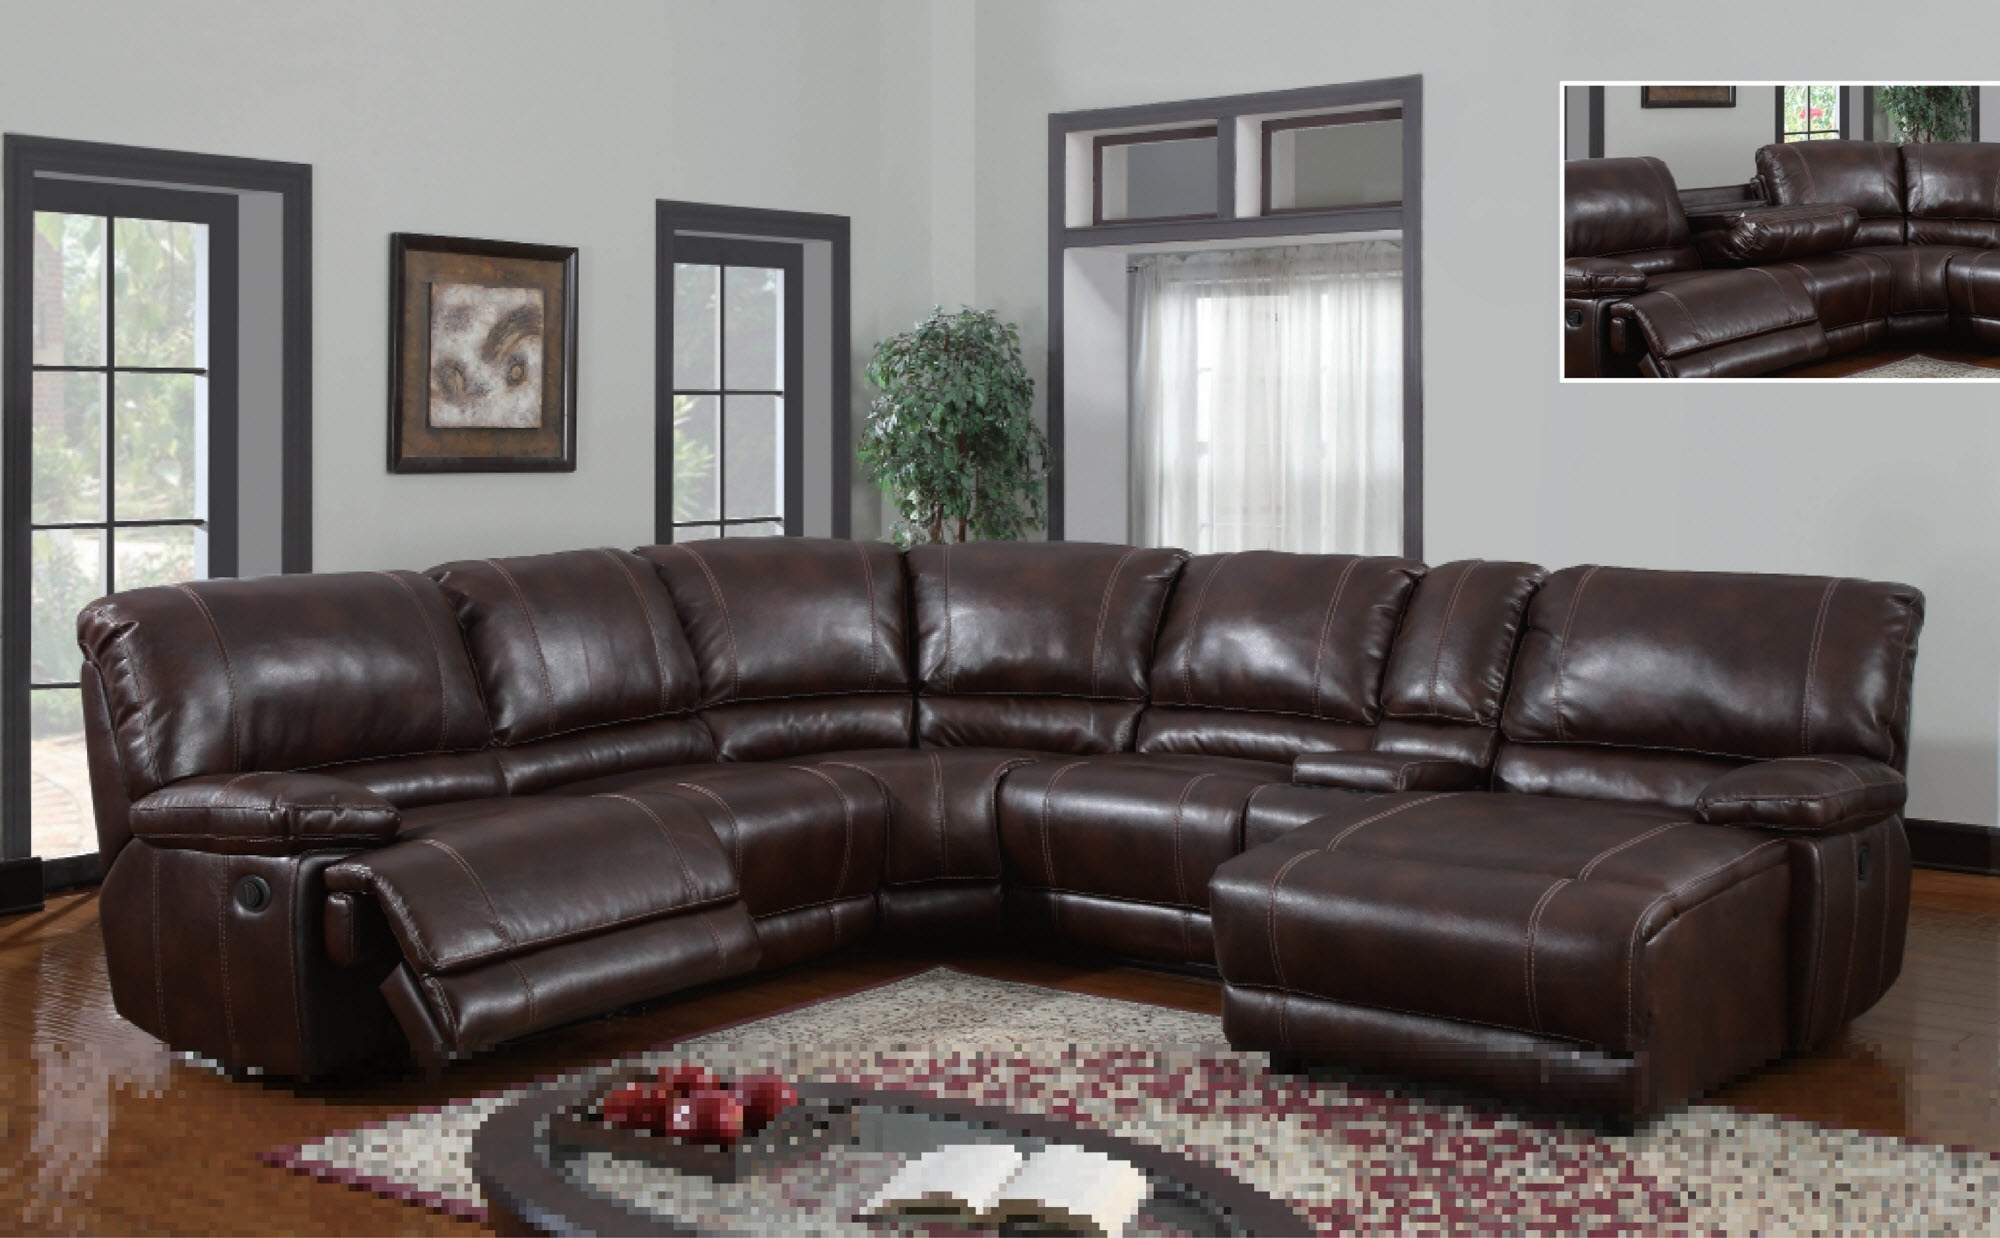 U1953 Global Furniture Usa Sectional With Power Recliner And Chaise Throughout Sectional Sofas With Power Recliners (Photo 3 of 10)